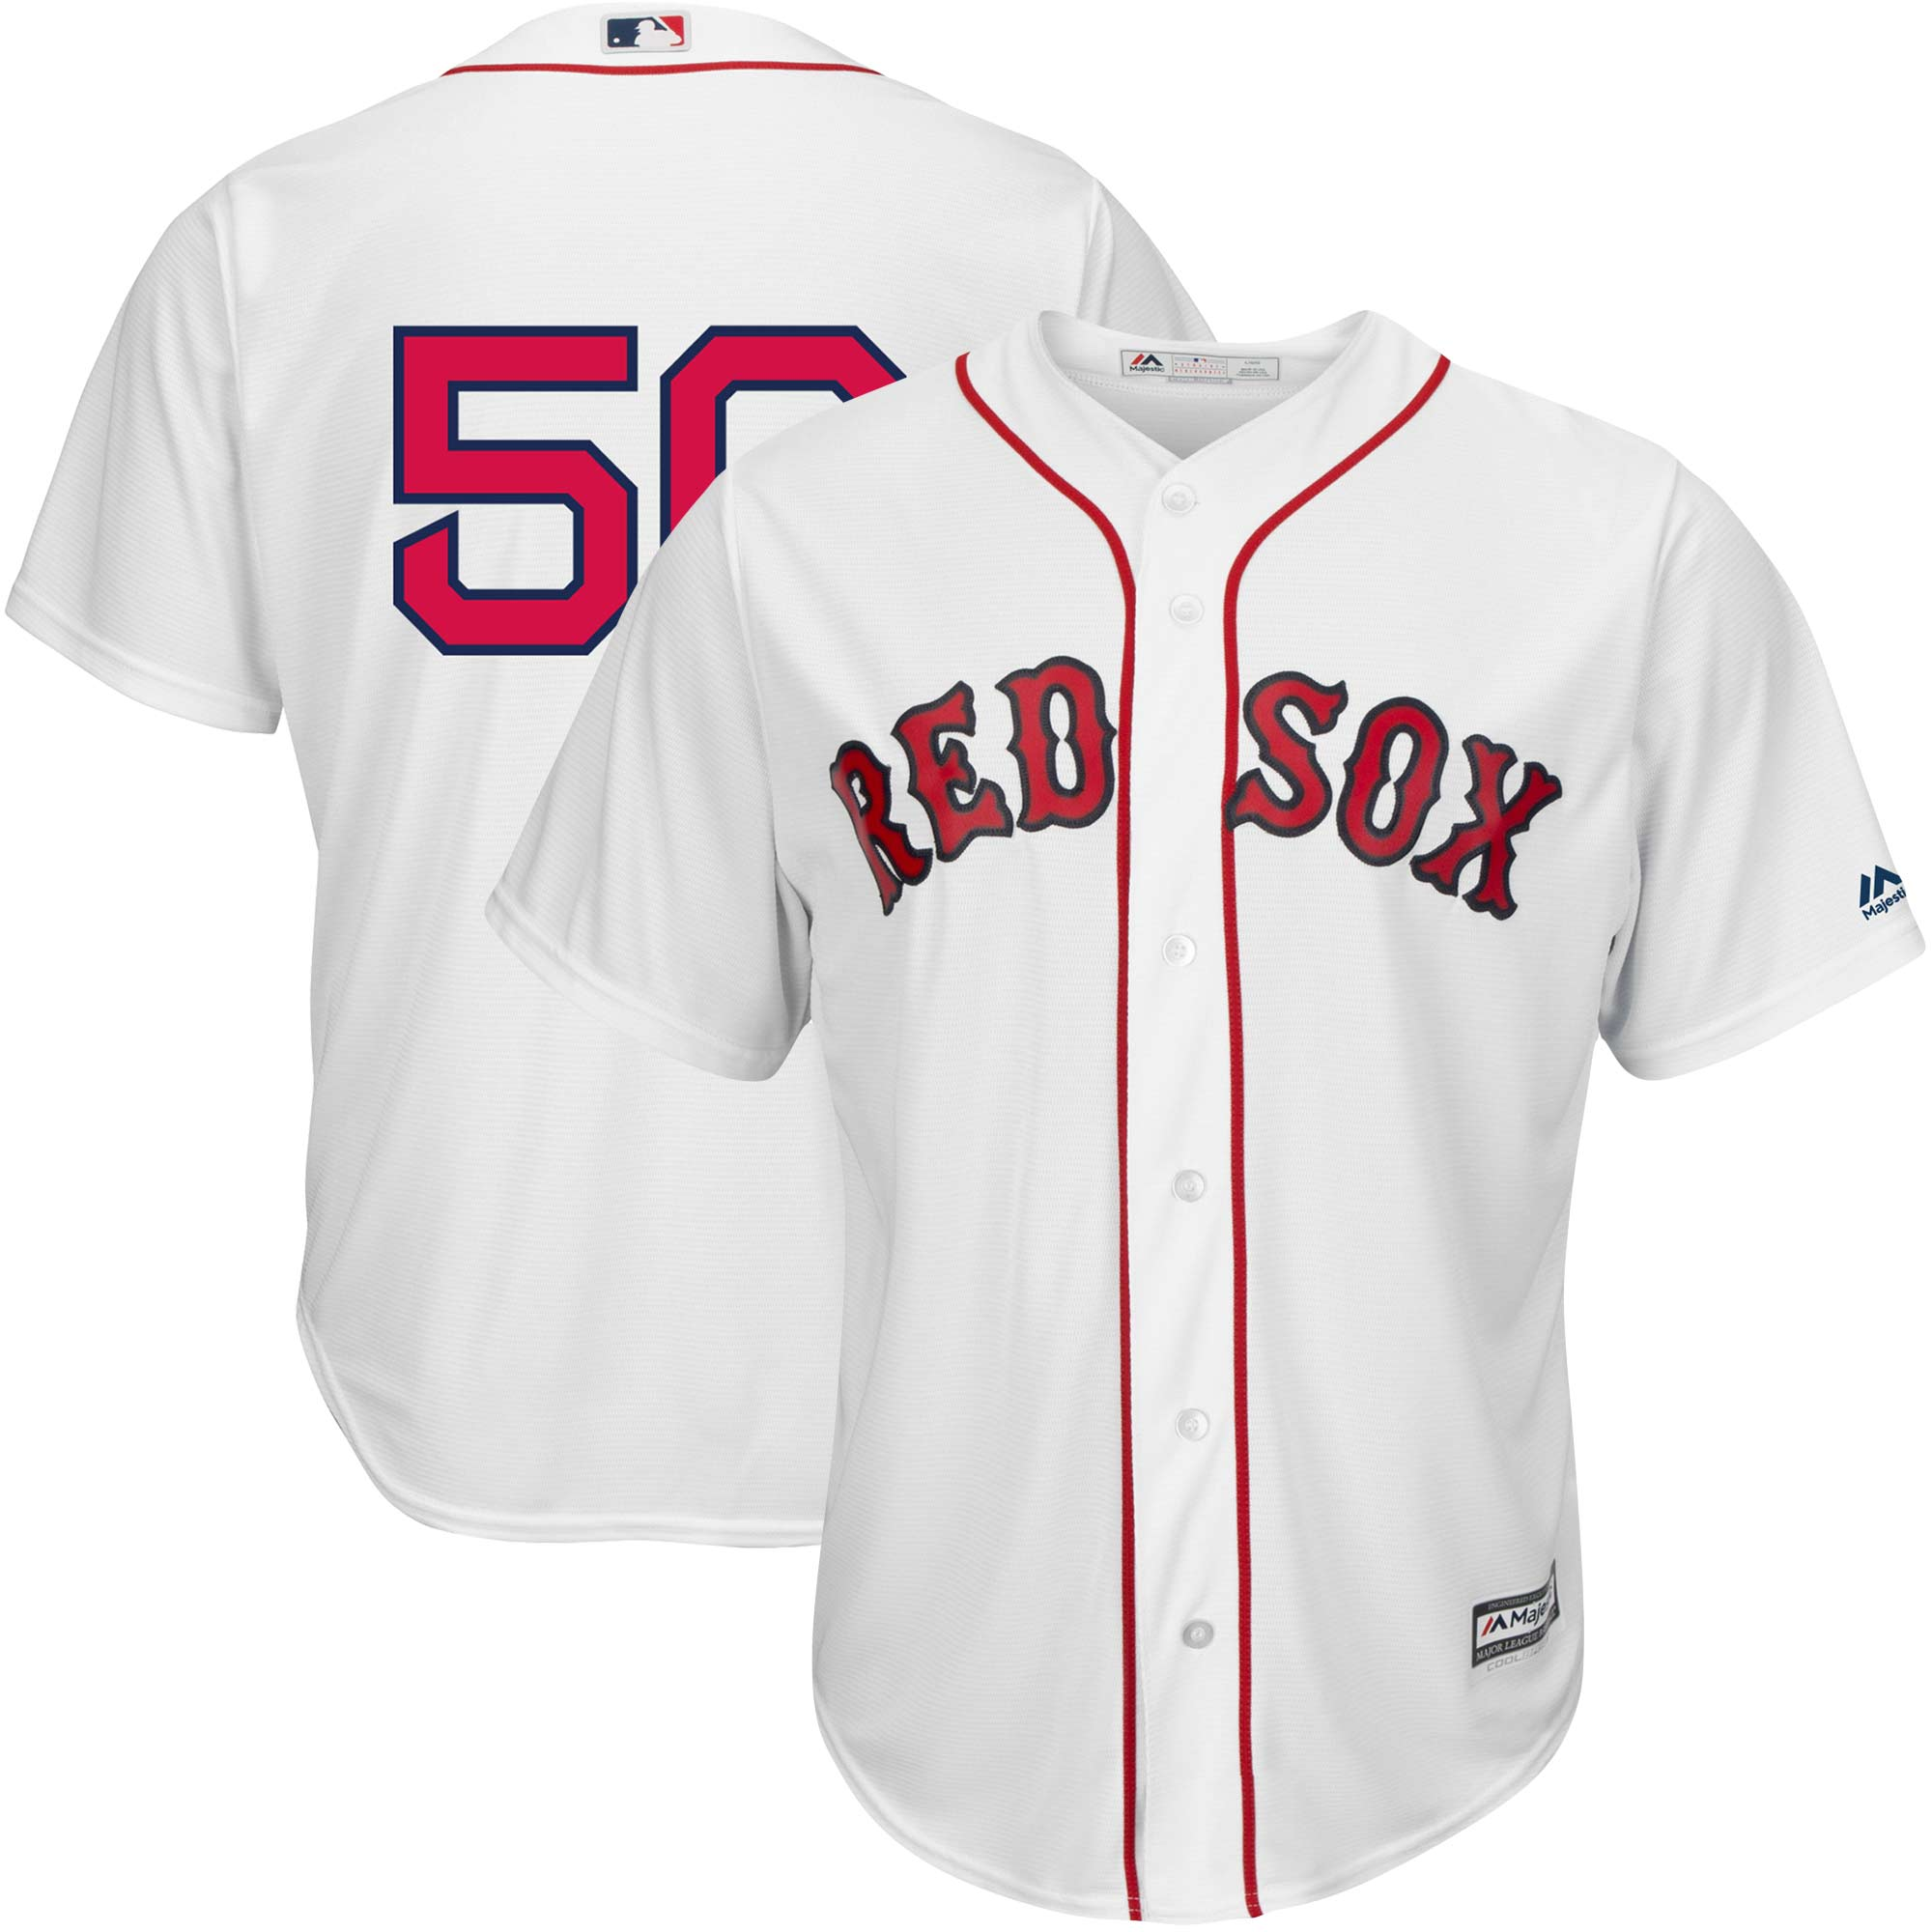 Mookie Betts Boston Red Sox Majestic Home Official Replica Cool Base Player Jersey - White